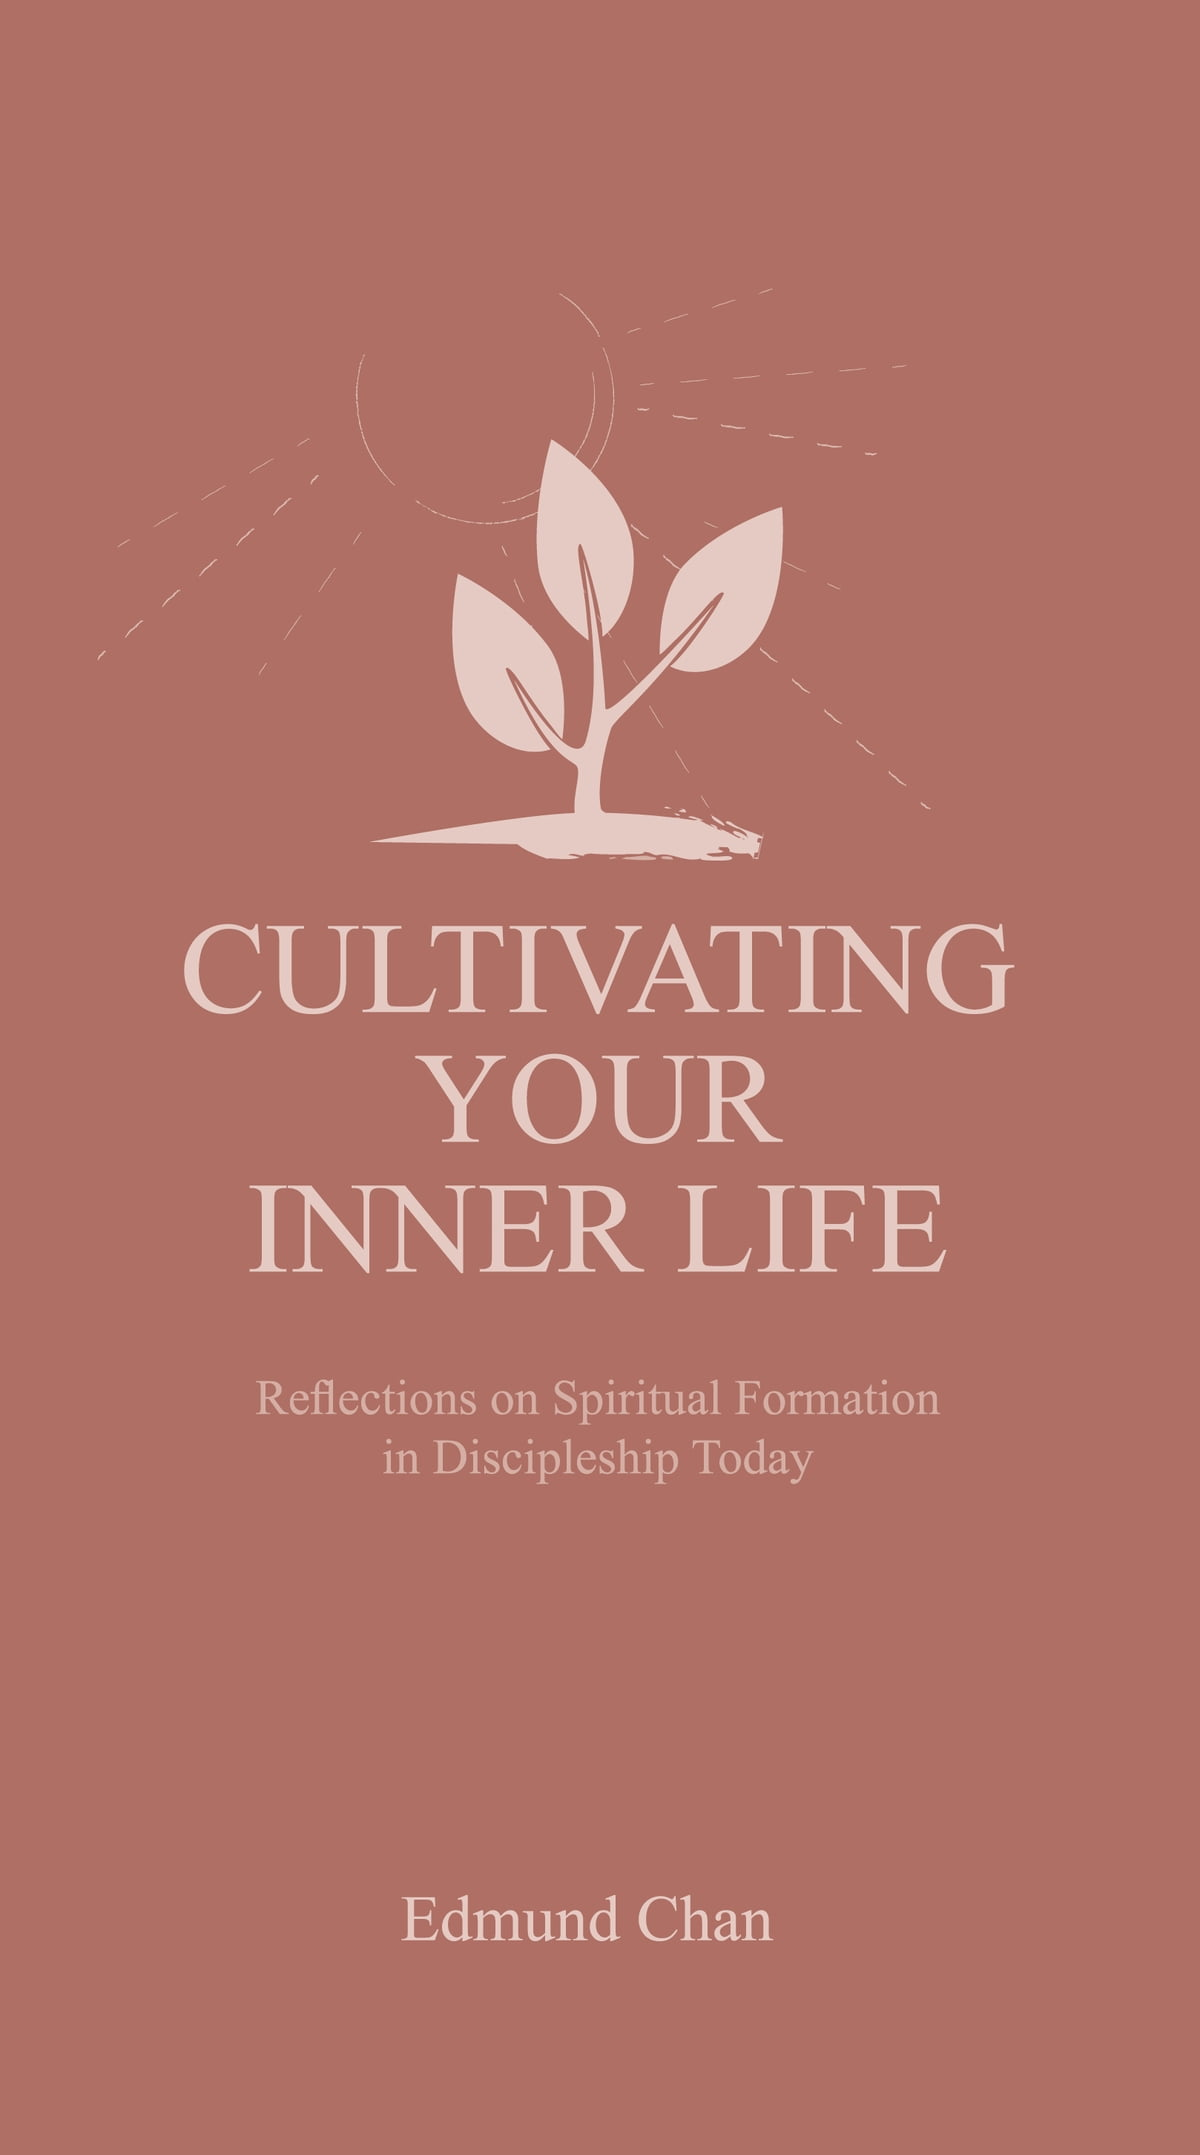 Radical discipleship ebook by edmund chan 1230000686624 rakuten kobo cultivating your inner life reflections on spiritual formation in discipleship today ebook by edmund chan fandeluxe Image collections